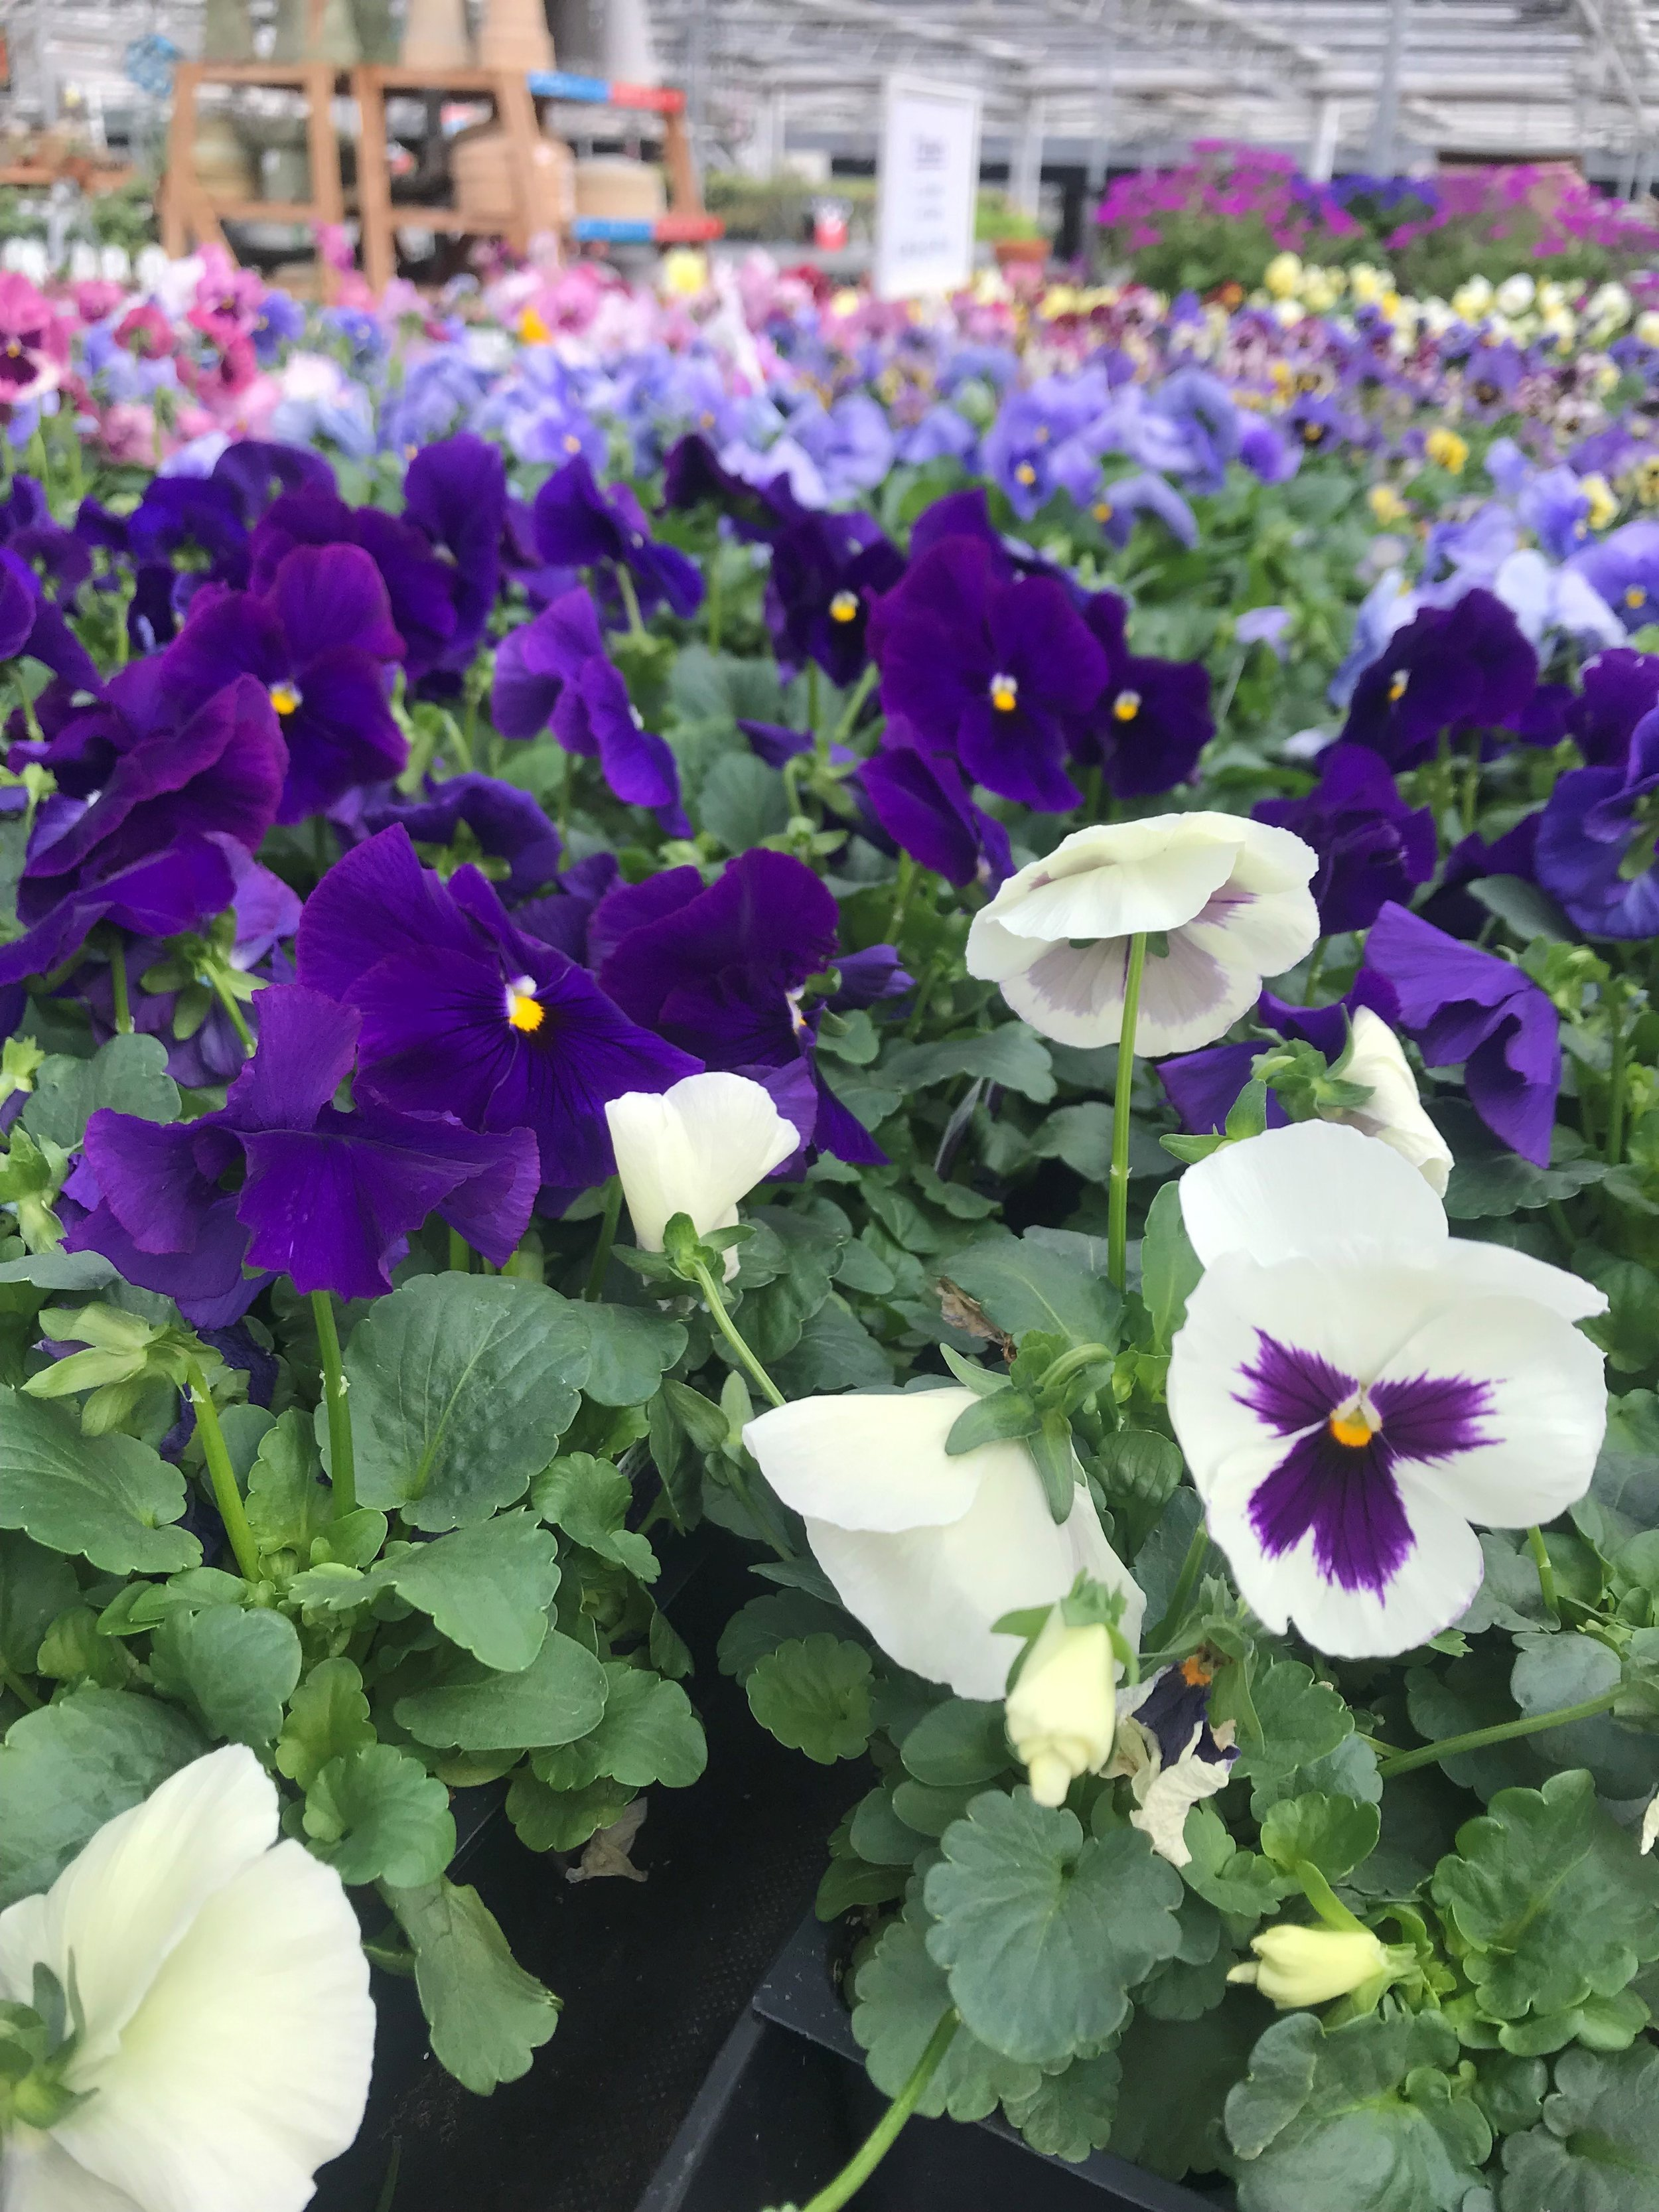 Plenty of pansies greet gardeners at Schaefer's Greenhouses in Montgomery